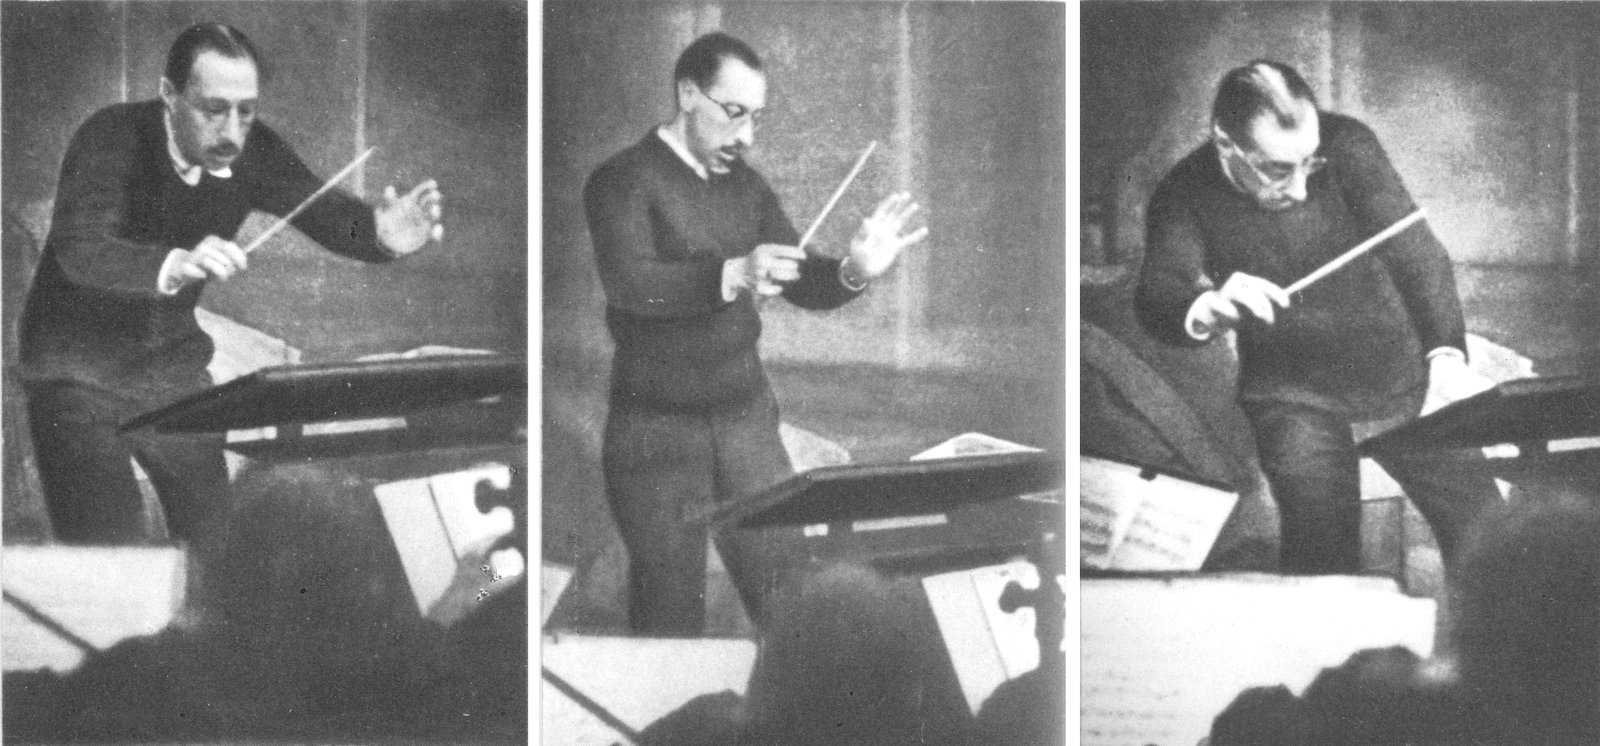 Stravinsky at the podium in 1929